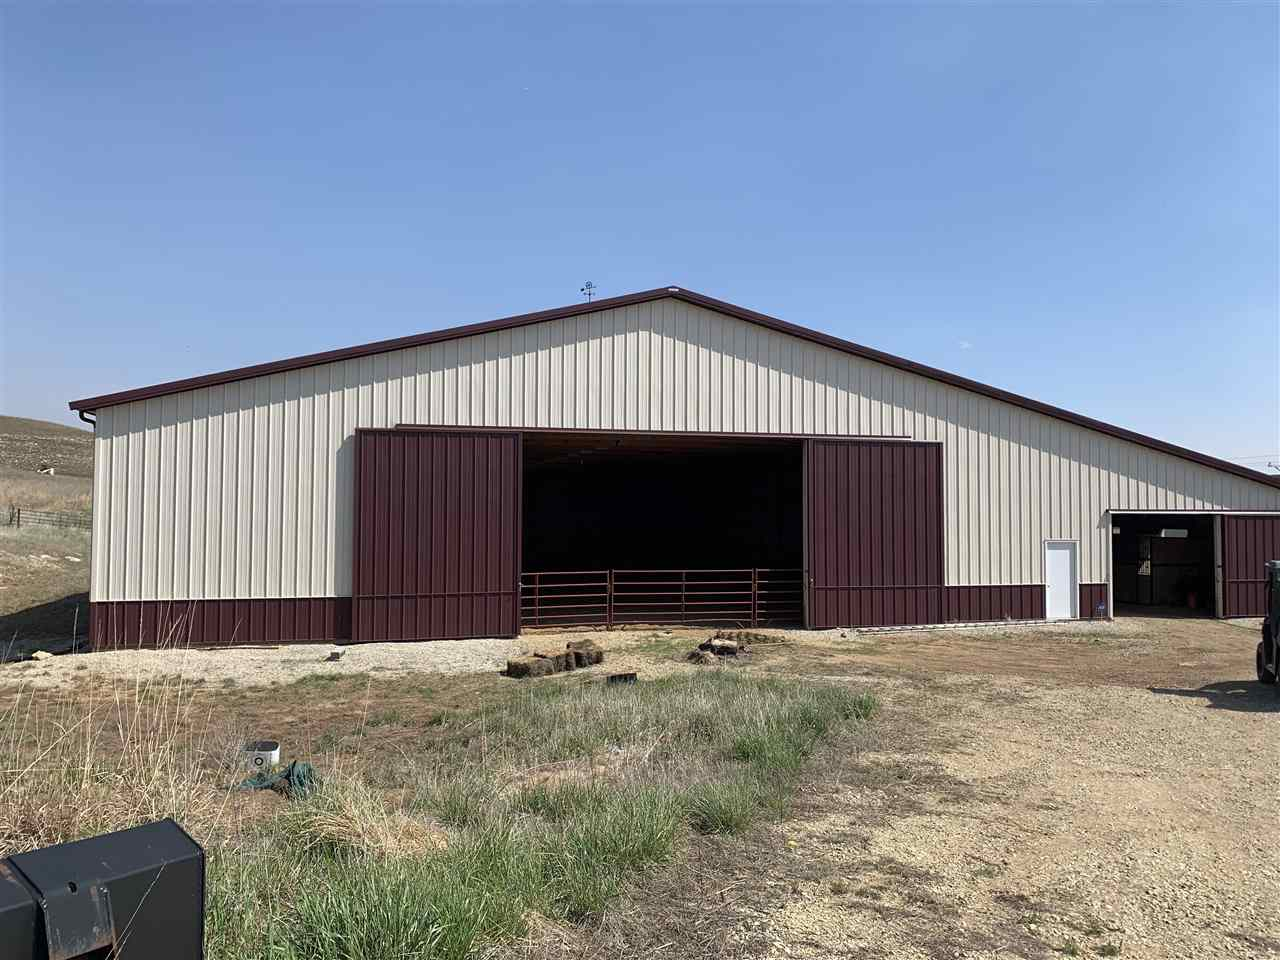 Location location location residential building site located  just 7 miles from town. Property has a 120 x 104 Morton building. 100 x 80 is a riding arena and 120 x 24 has 6 stalls and a tack area on 5 acres m/l. Hay shed 60 x 30 and 24 x 14 shed to the south goes with this property